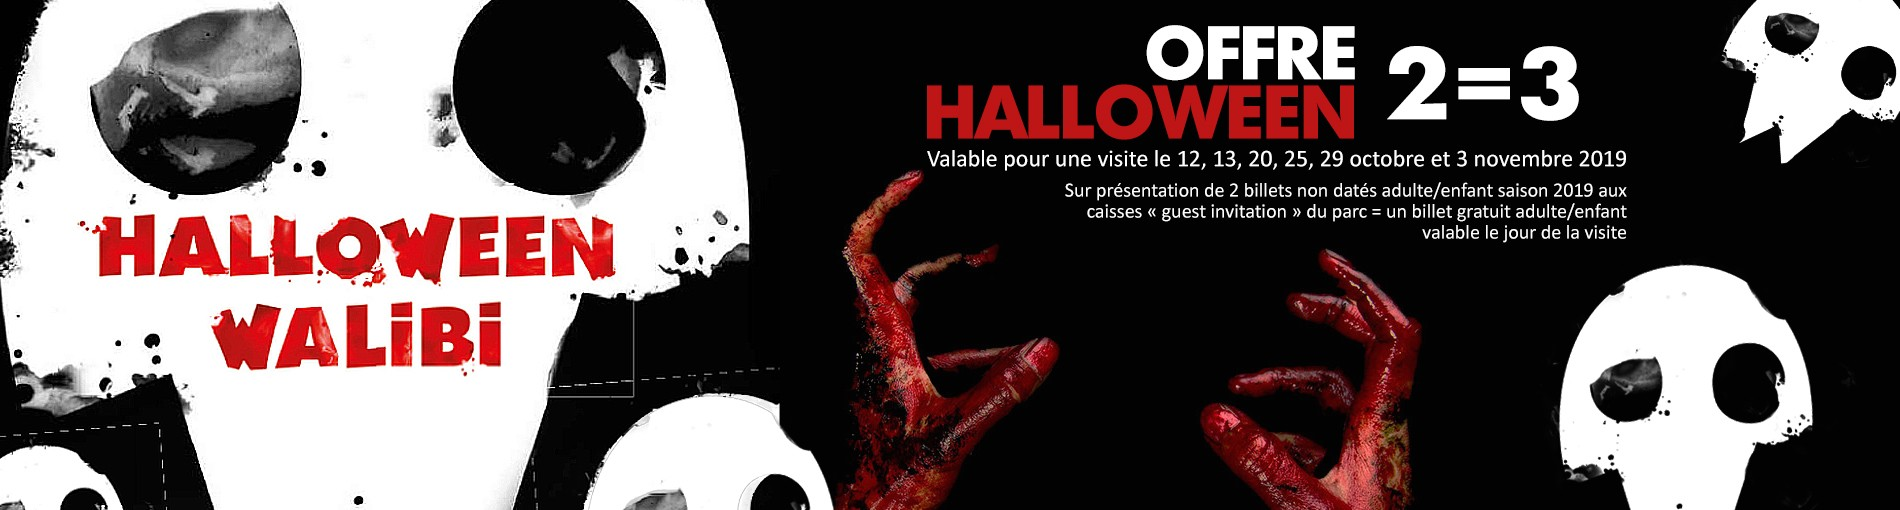 Halloween 2019 - offre 2=3